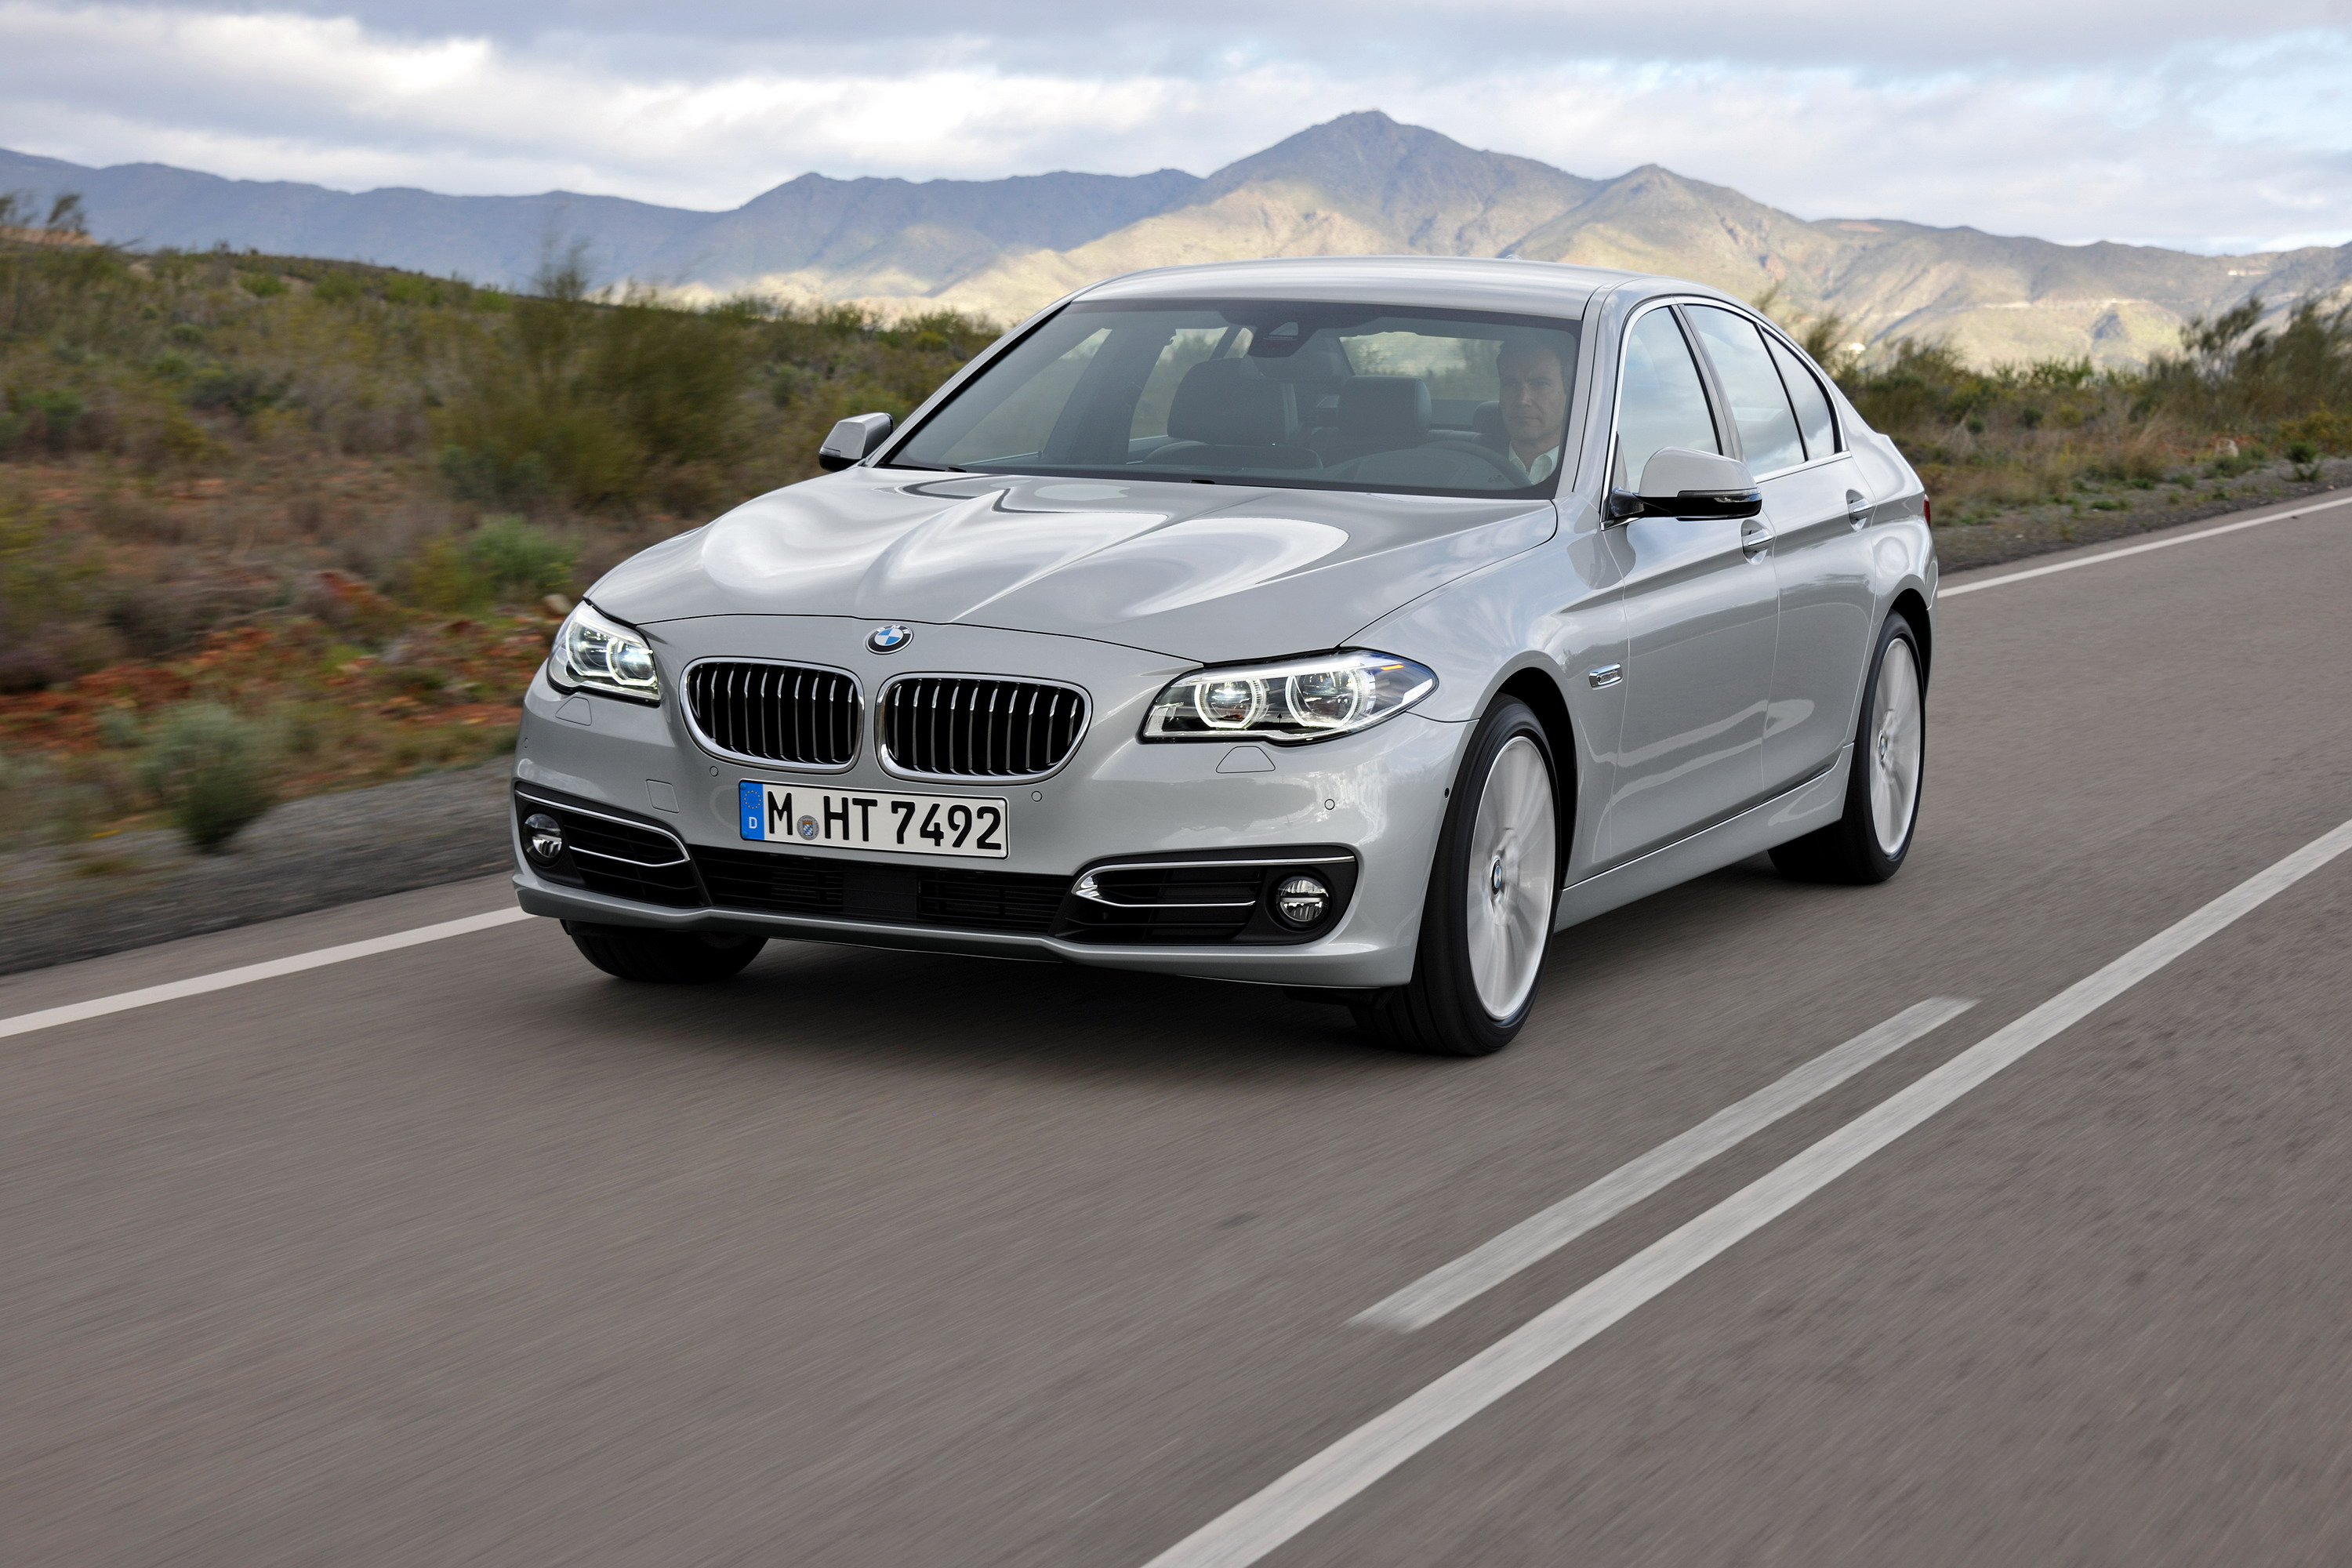 BMW N63 Customer Care Package: A Recall That BMW Refuses To